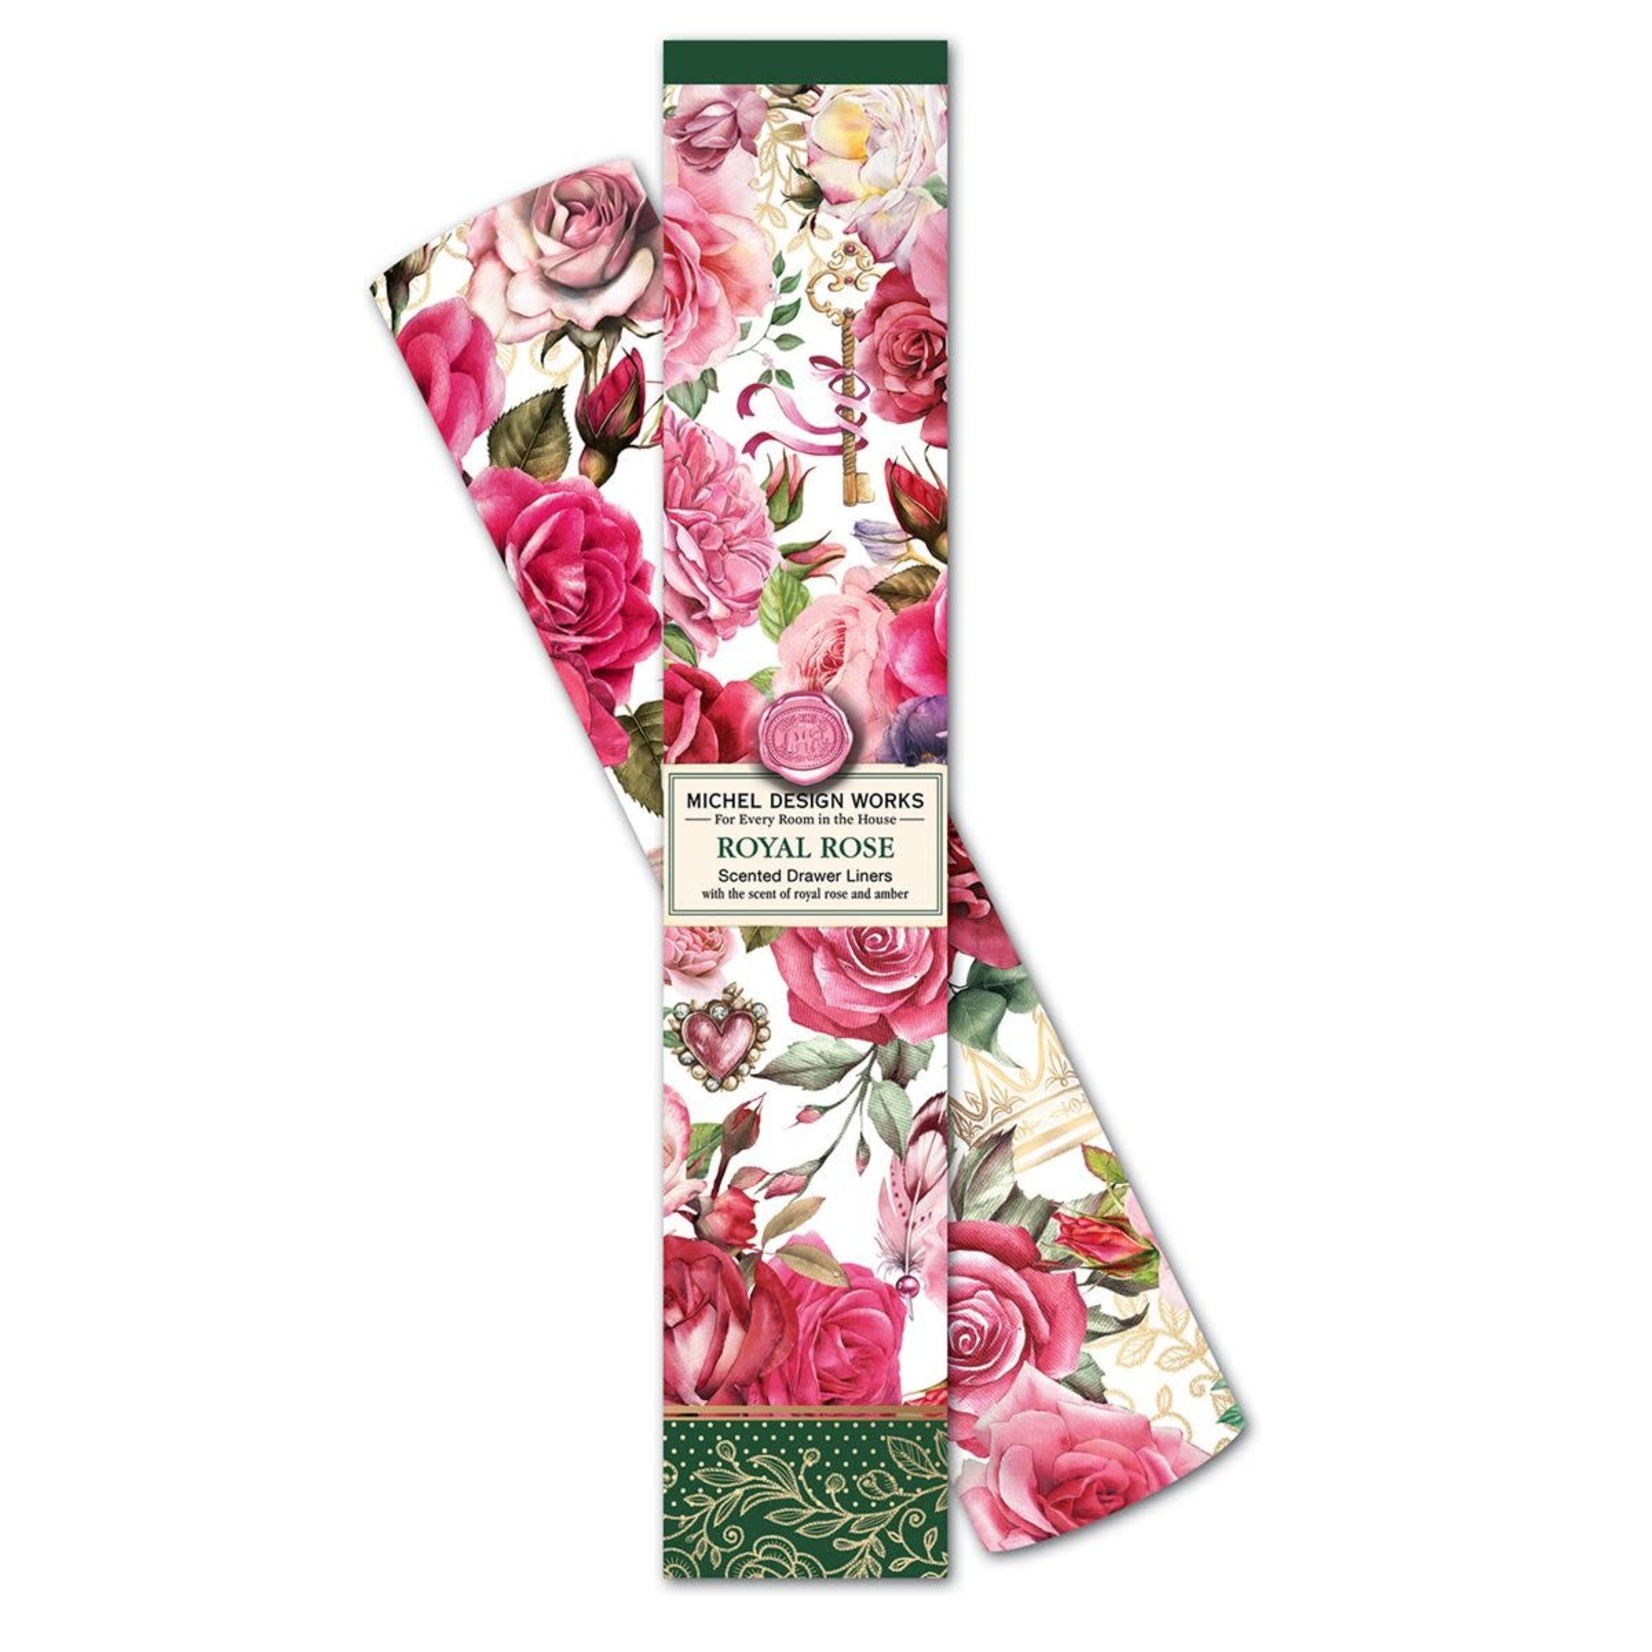 Michel Design Works Royal Rose Drawer Liner